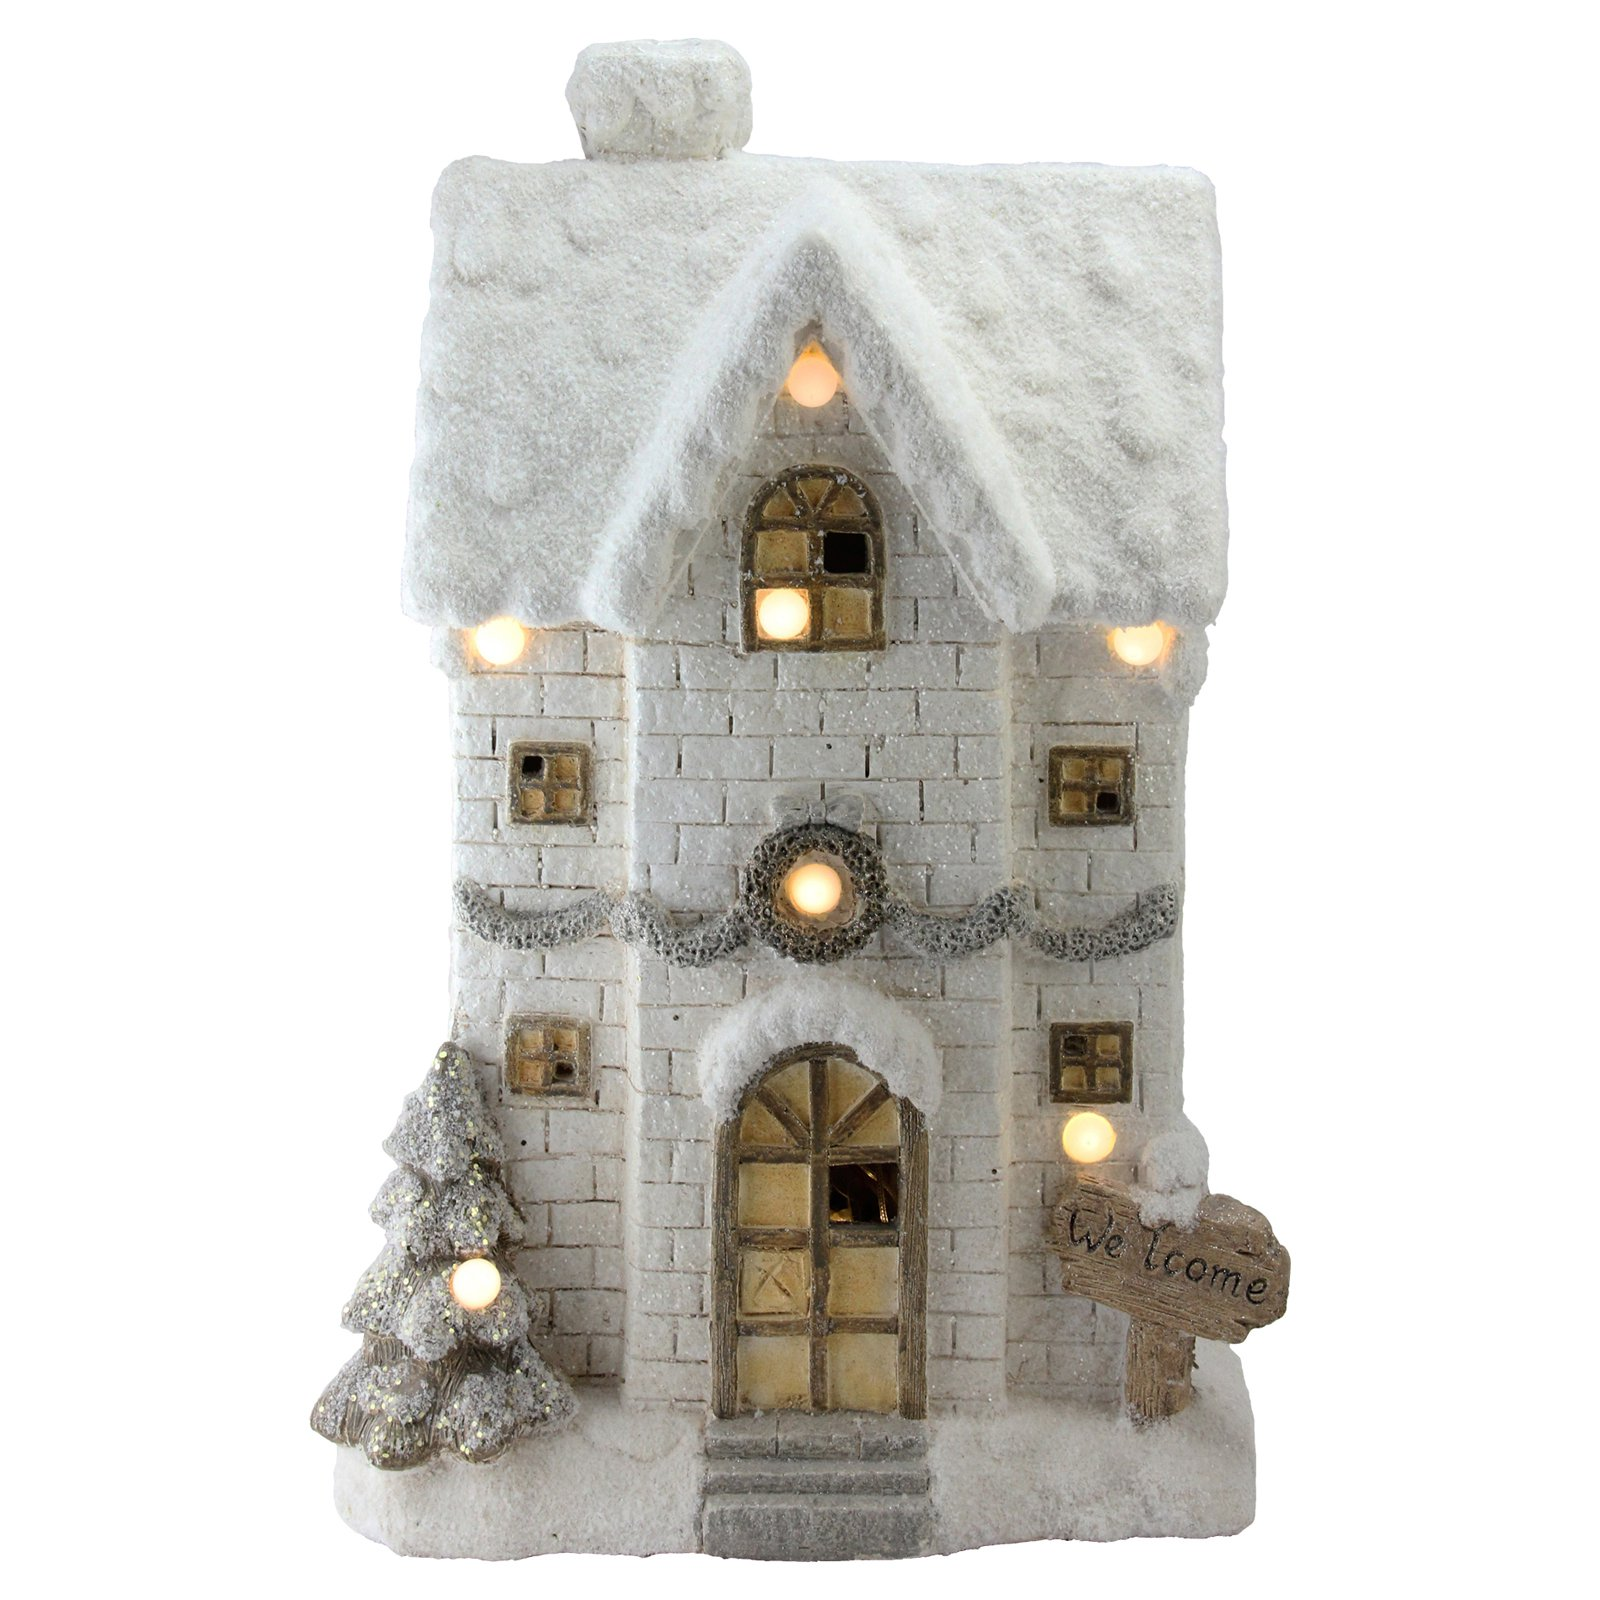 Northlight 22.5 in. Musical Snowy Brick House Pre Lit Decorative Accent